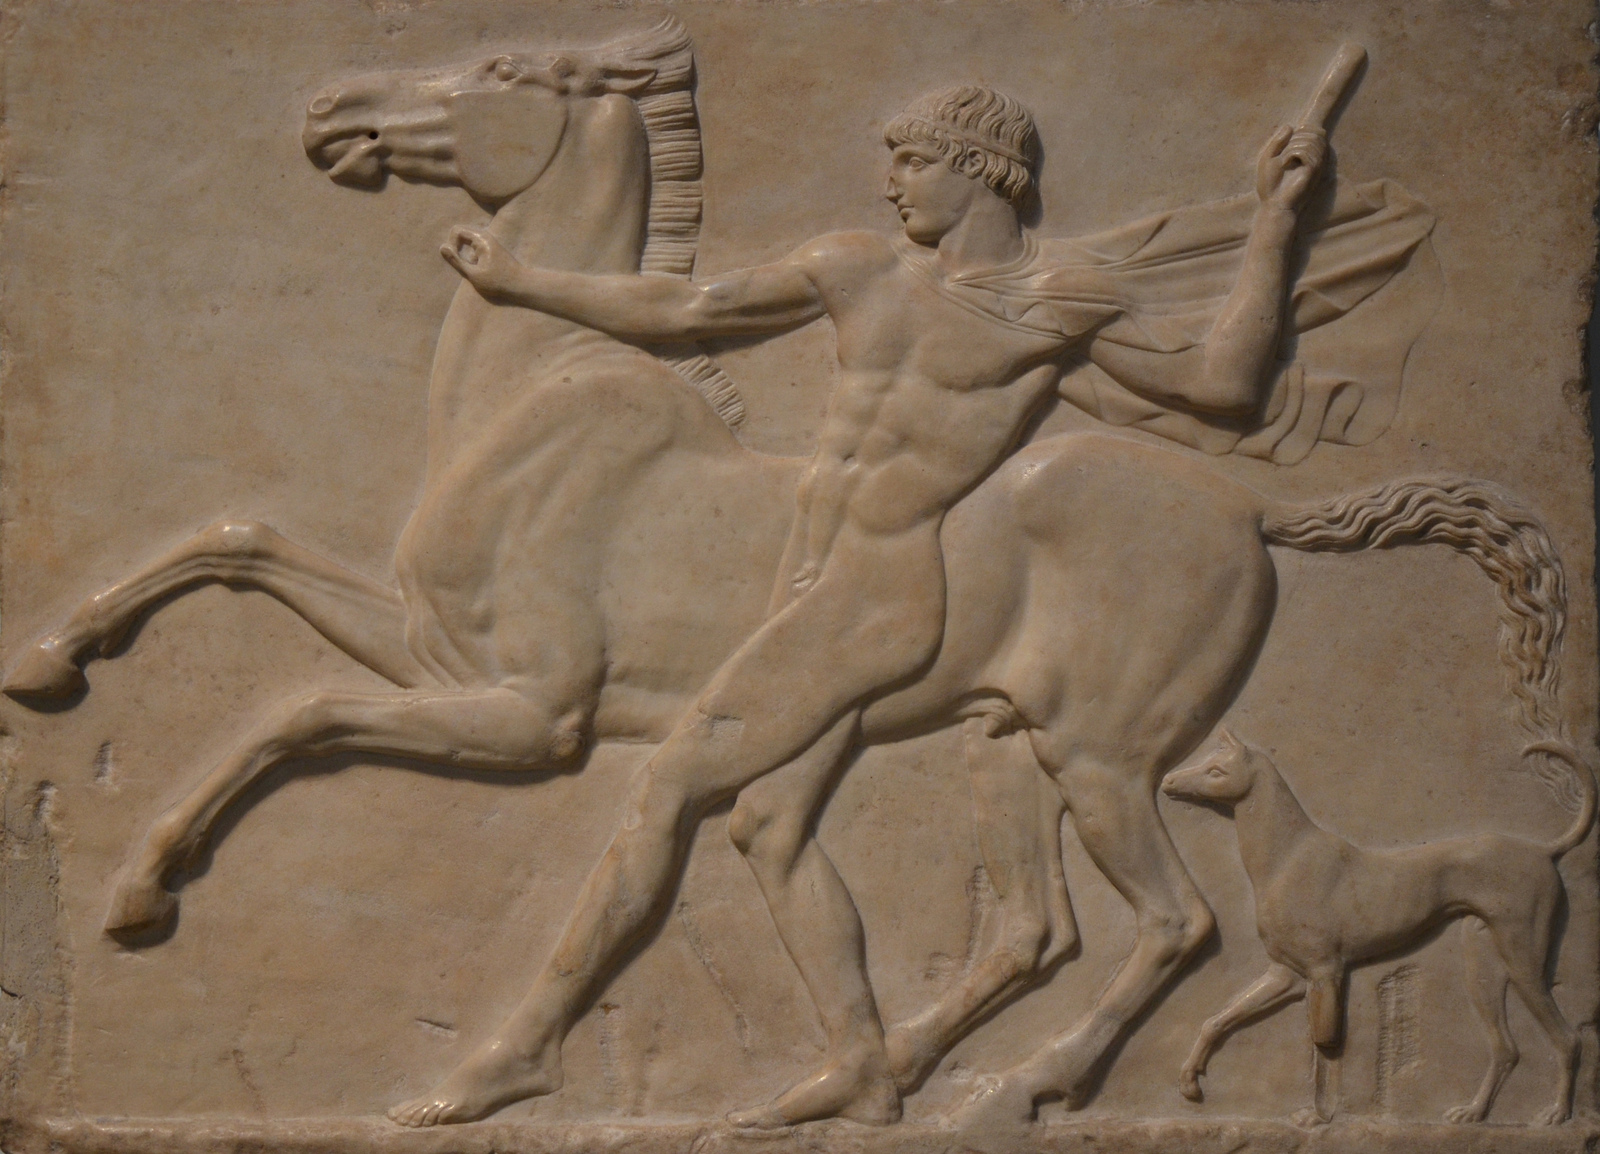 Art and sculptures from Hadrian's Villa: Marble relief depicting a youth with his horse